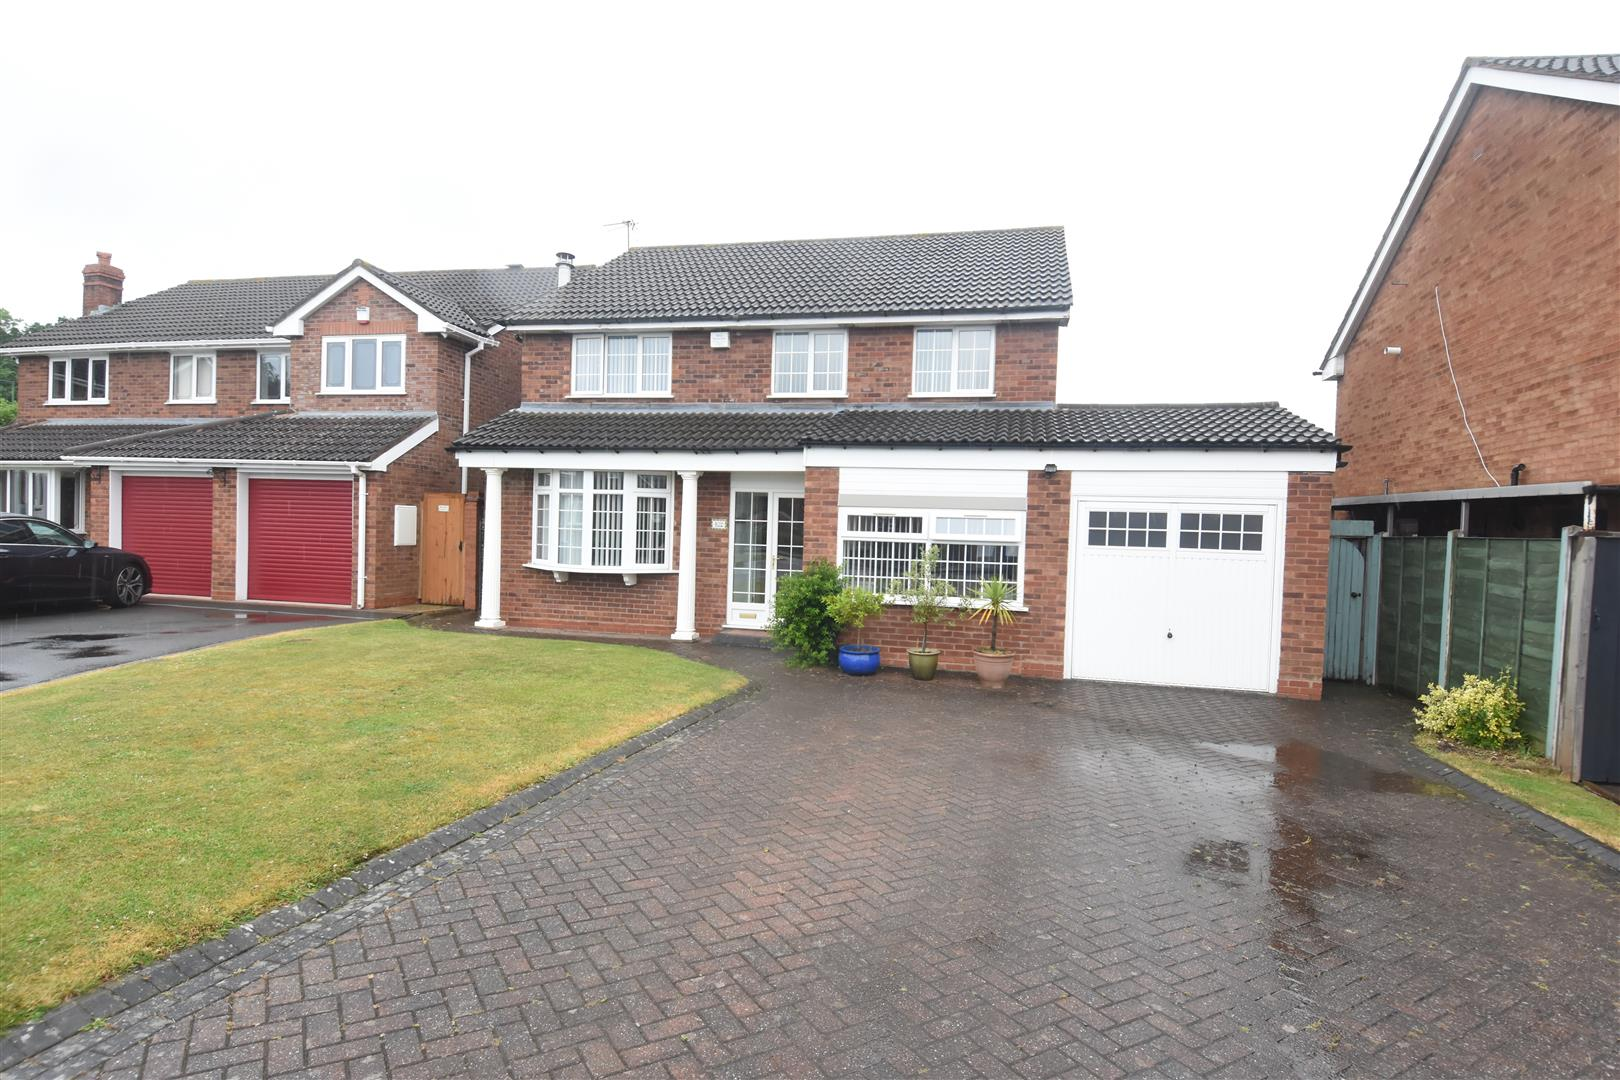 4 bed house for sale in Park Hall Crescent, Birmingham, B36